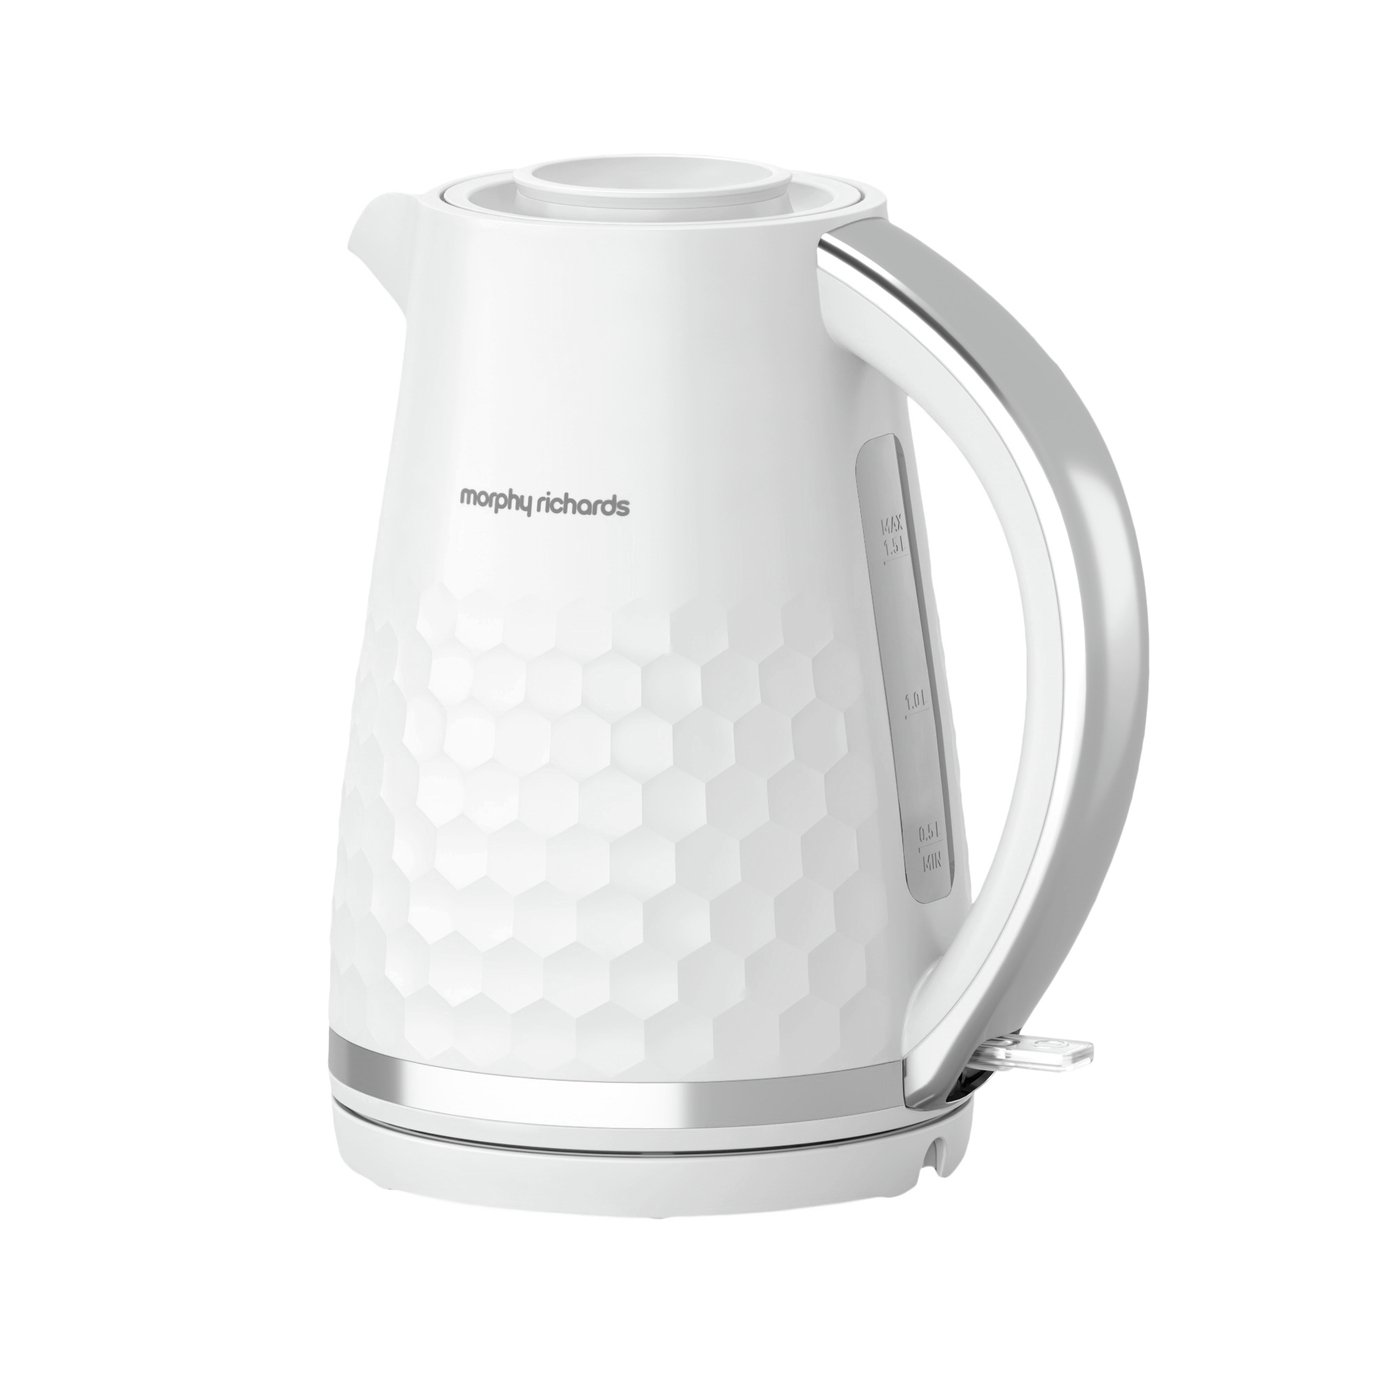 Morphy Richards 108274 Hive Kettle - White